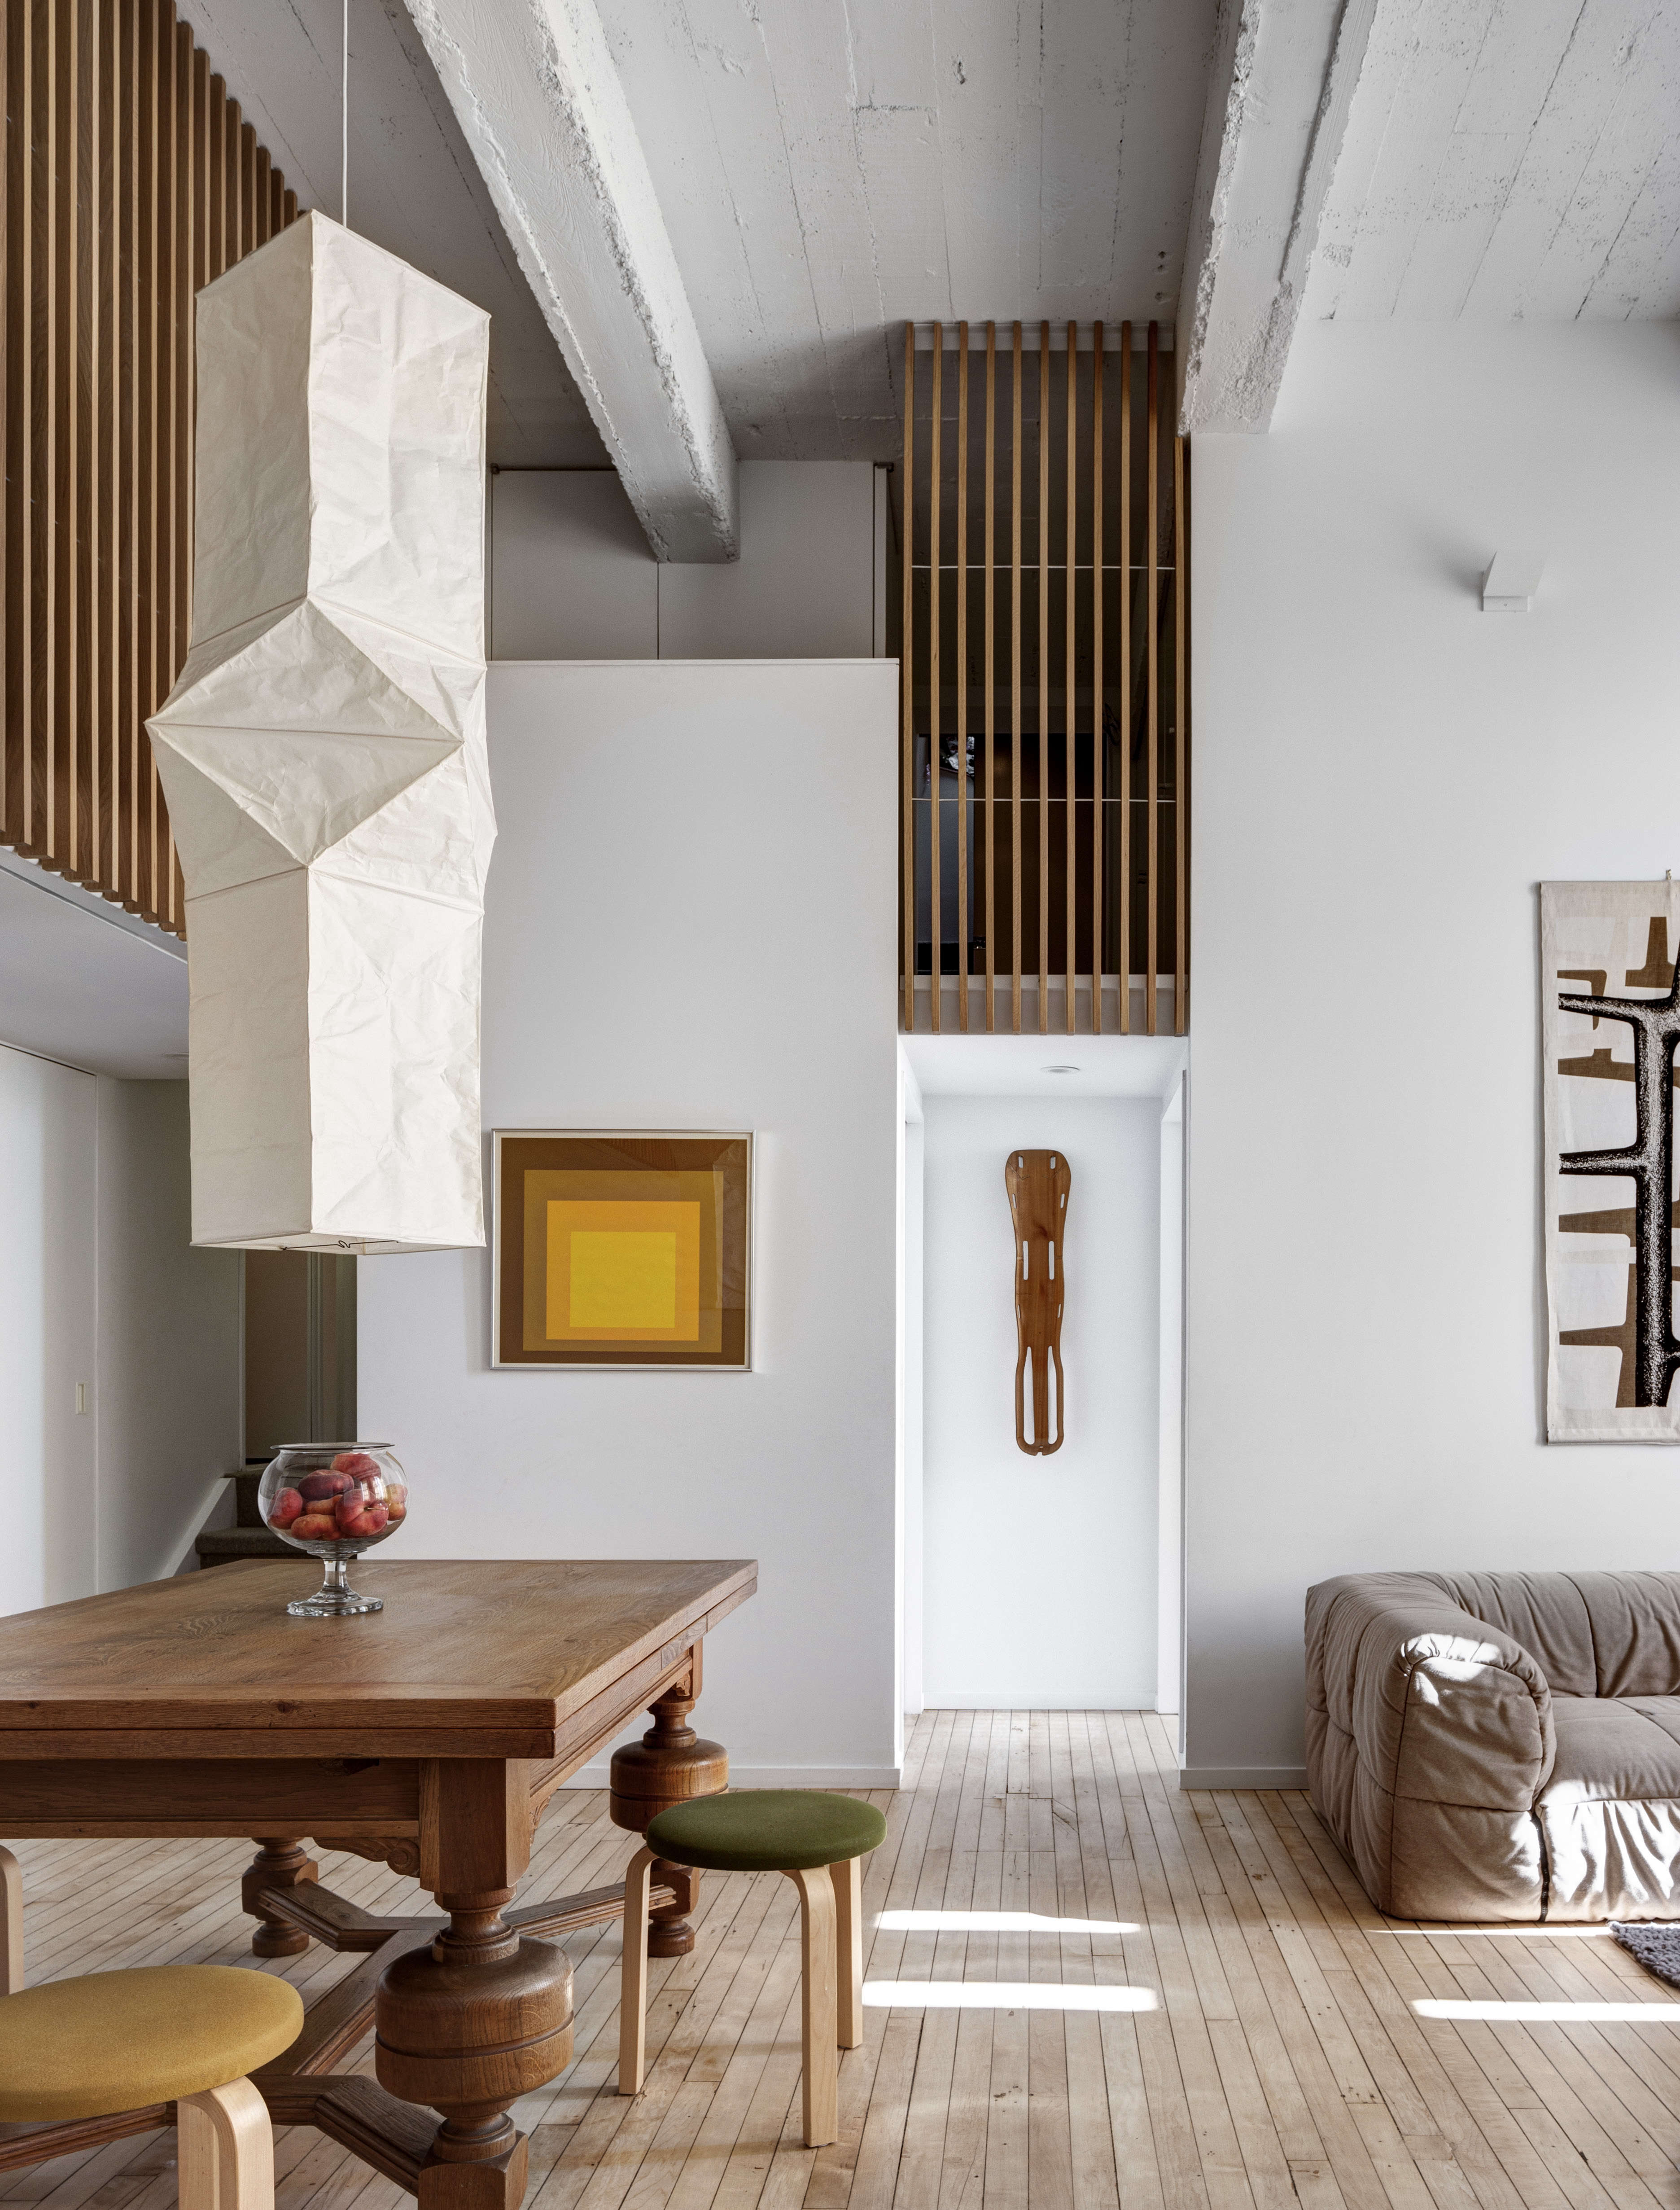 An Eclectic Apartment Inspired By Japanese Storage Chests